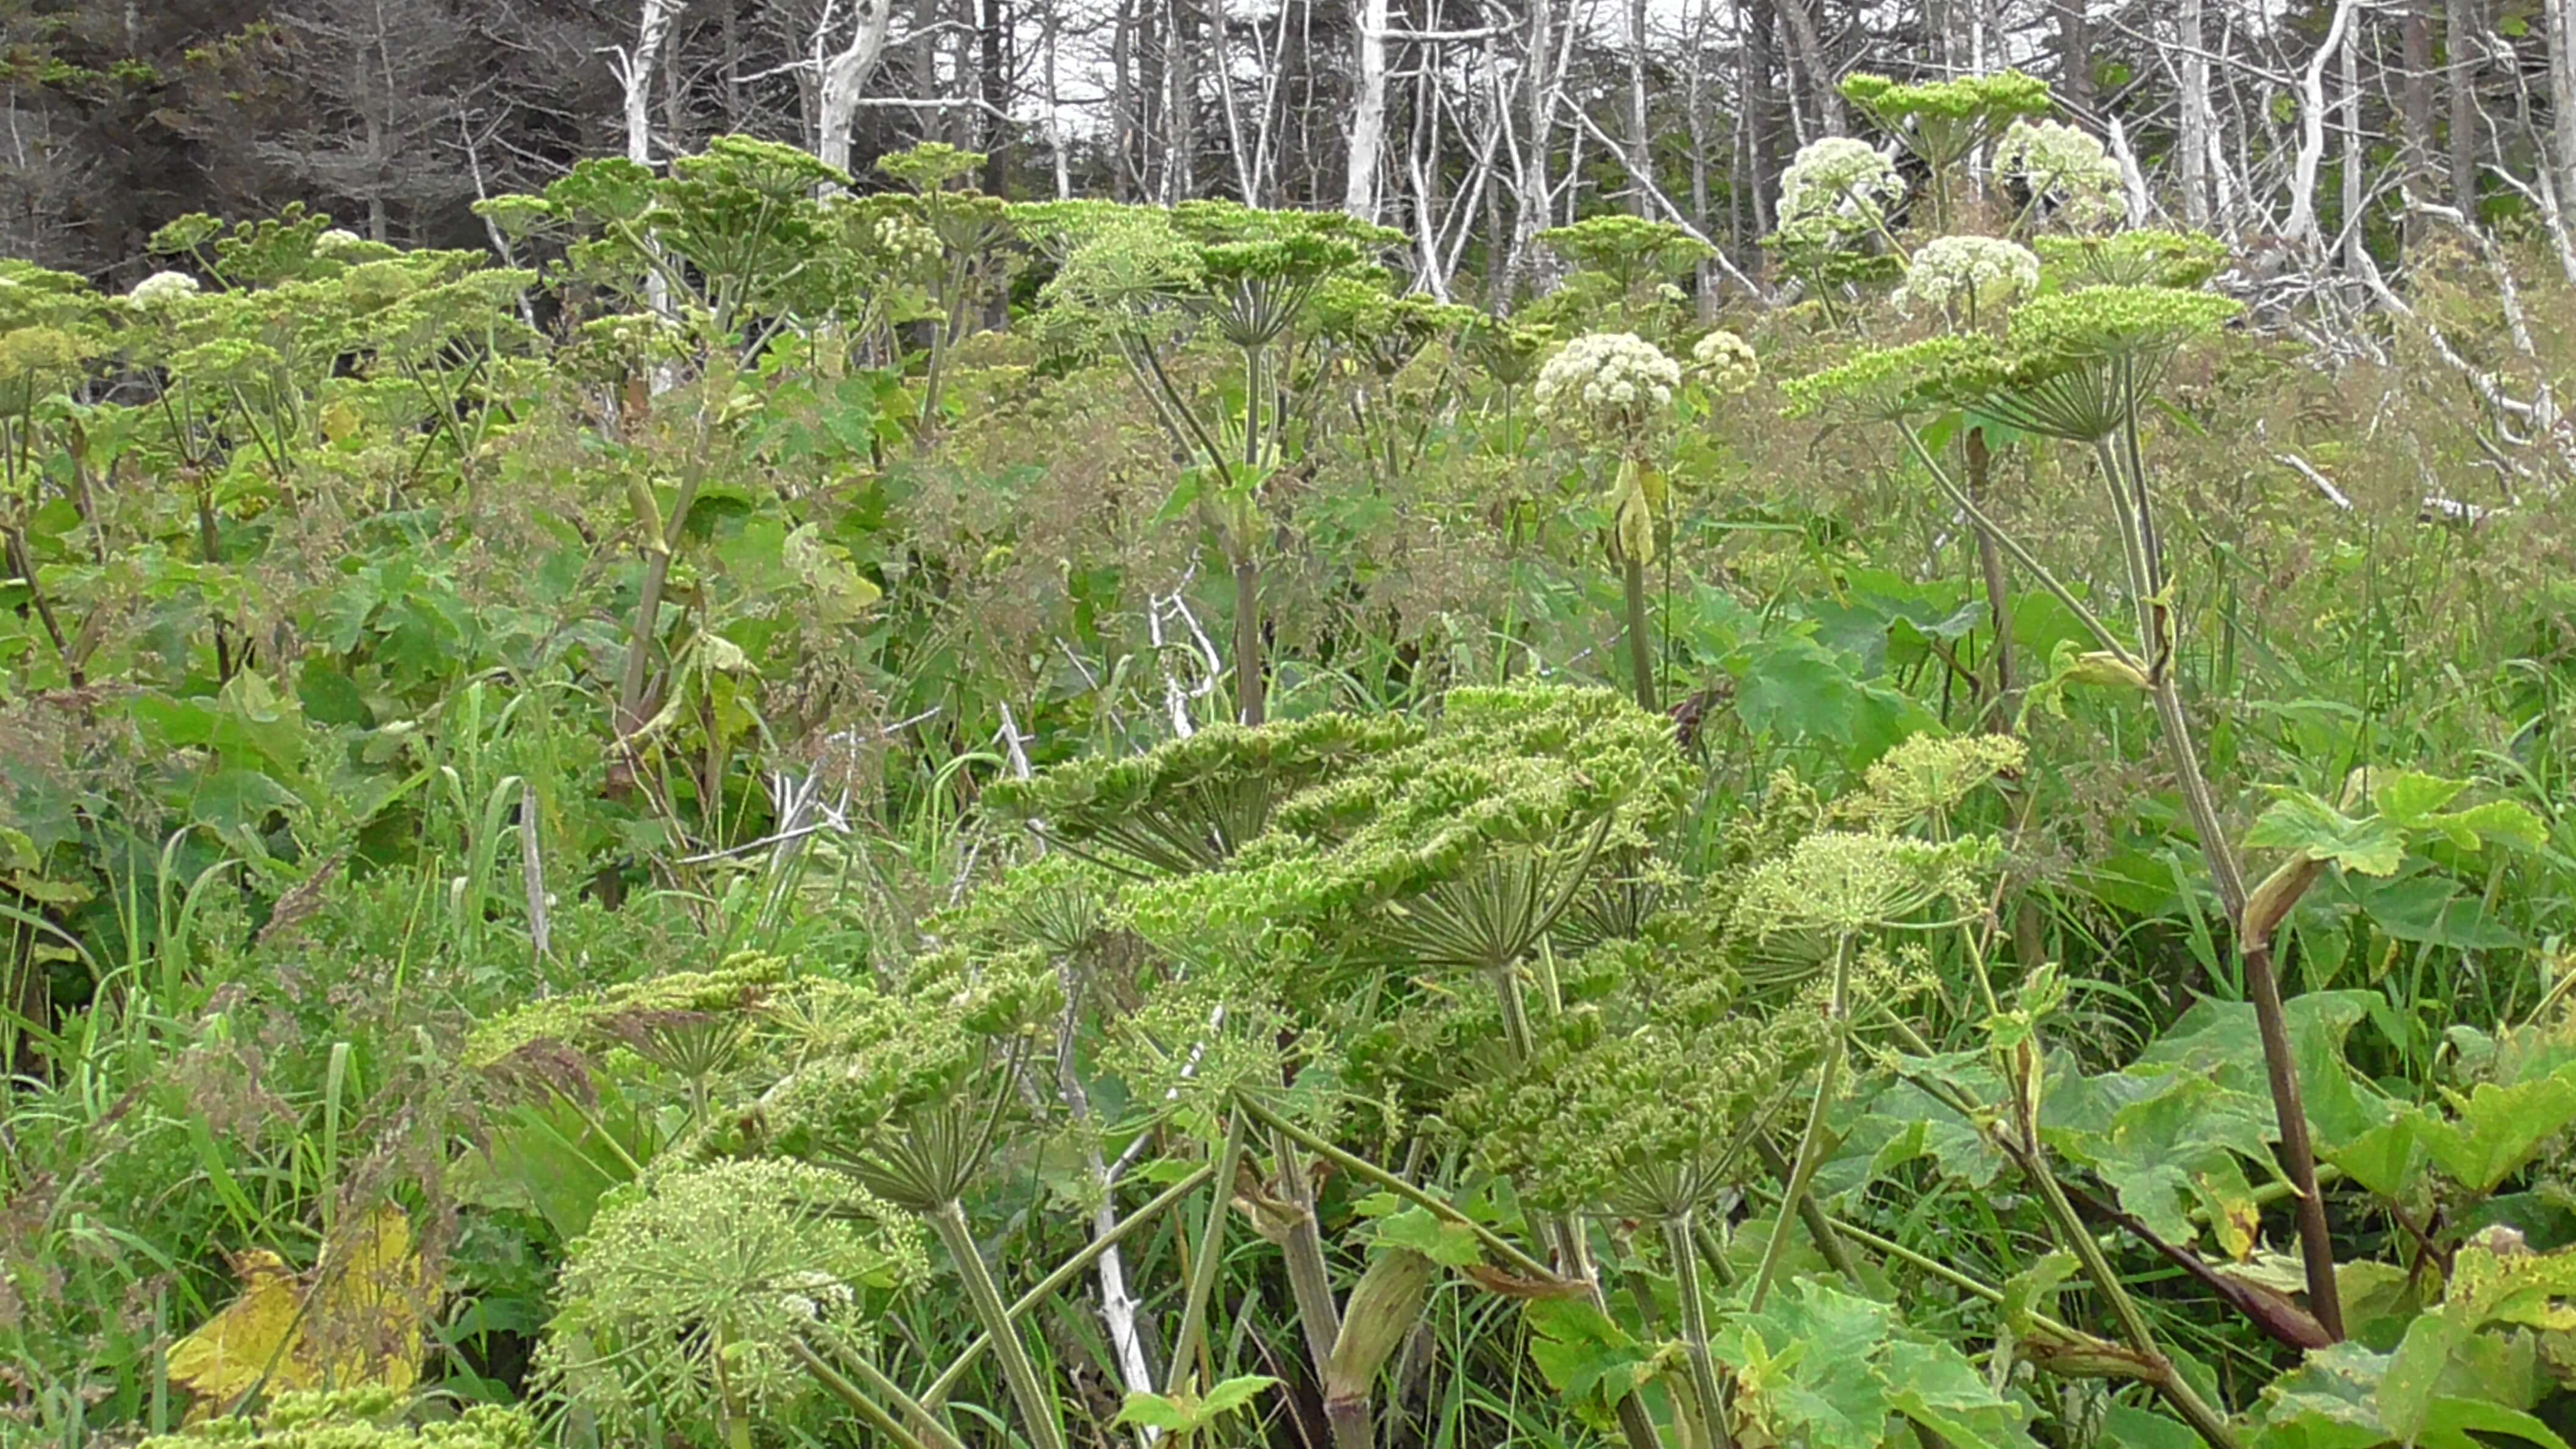 Cow Parsnip in Northern Newfoundland